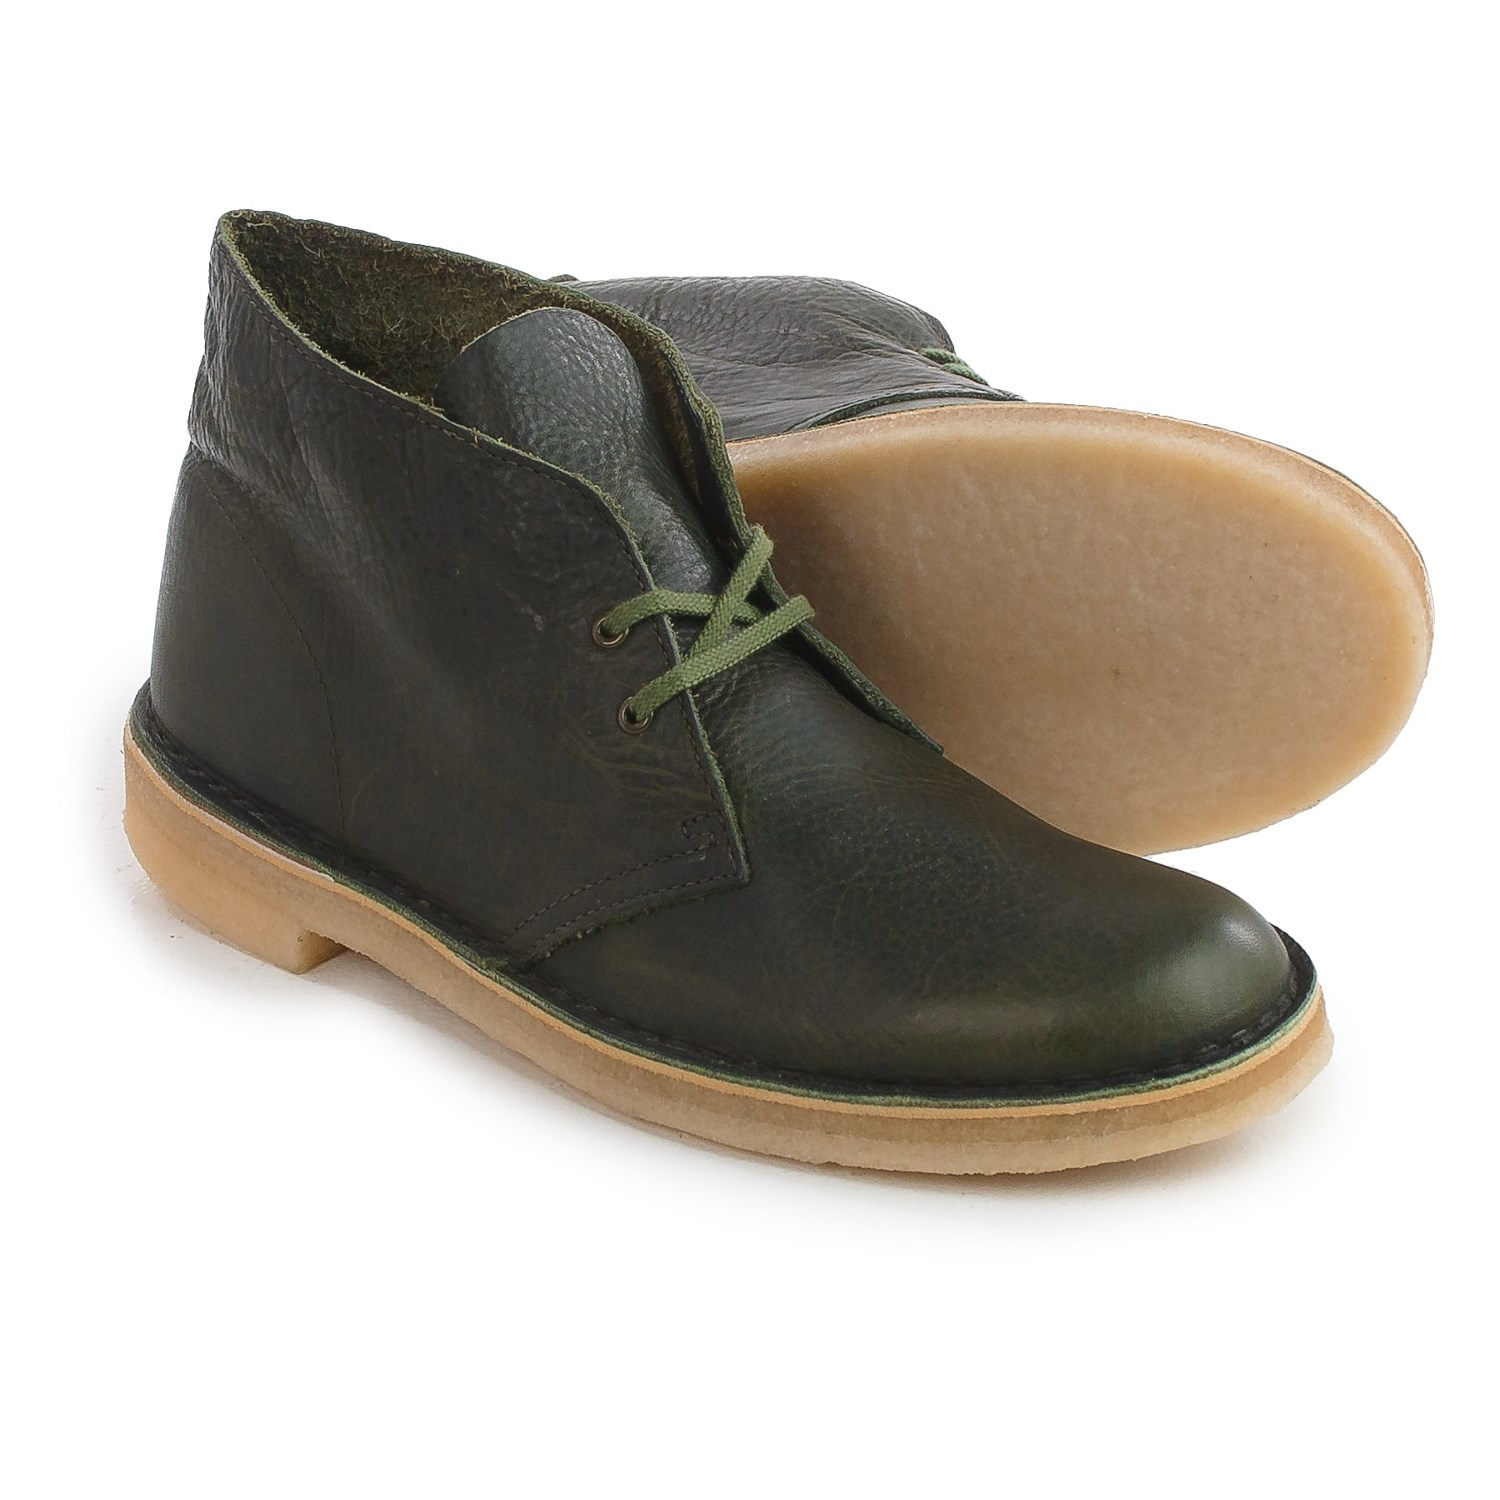 Clarks Desert Boots (For Men) - Save 61%